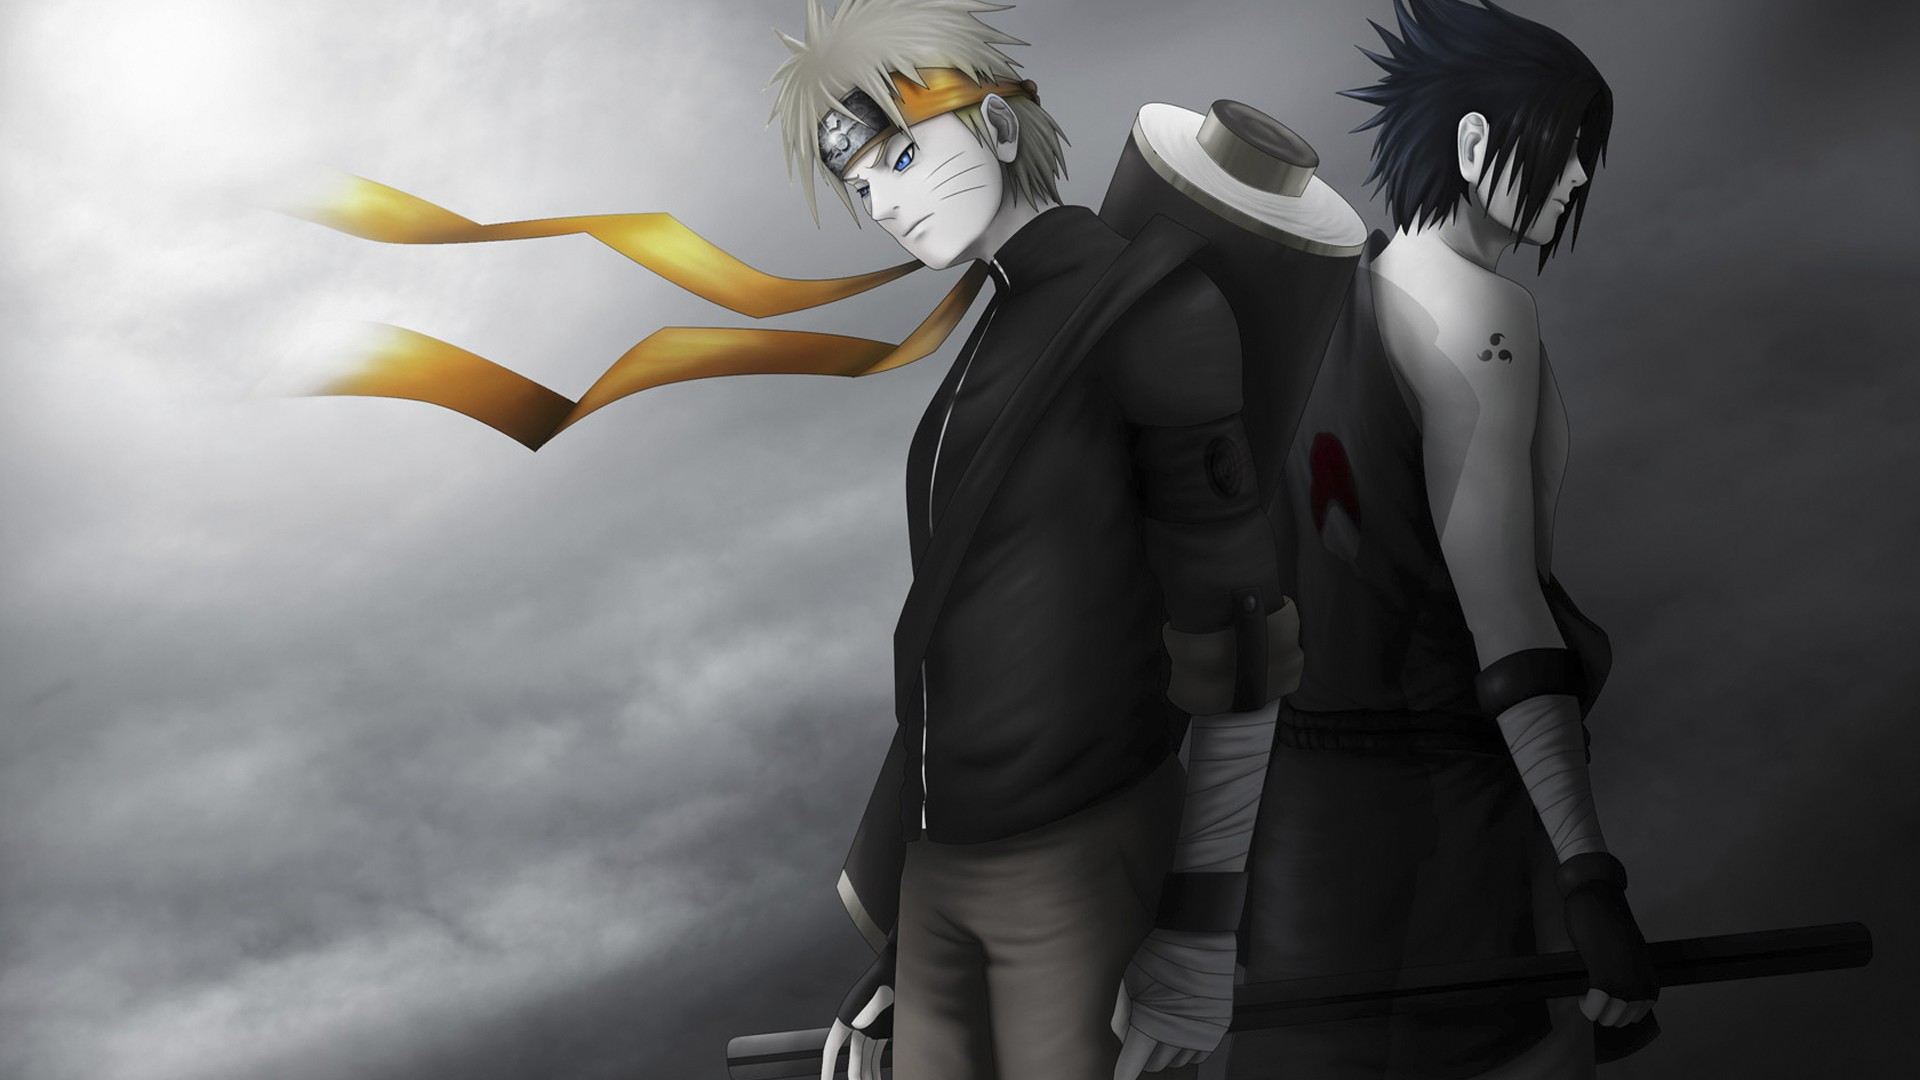 Amazing Wallpaper Naruto High Definition - naruto-full-hd-wallpaper-3  Trends_32758.jpg